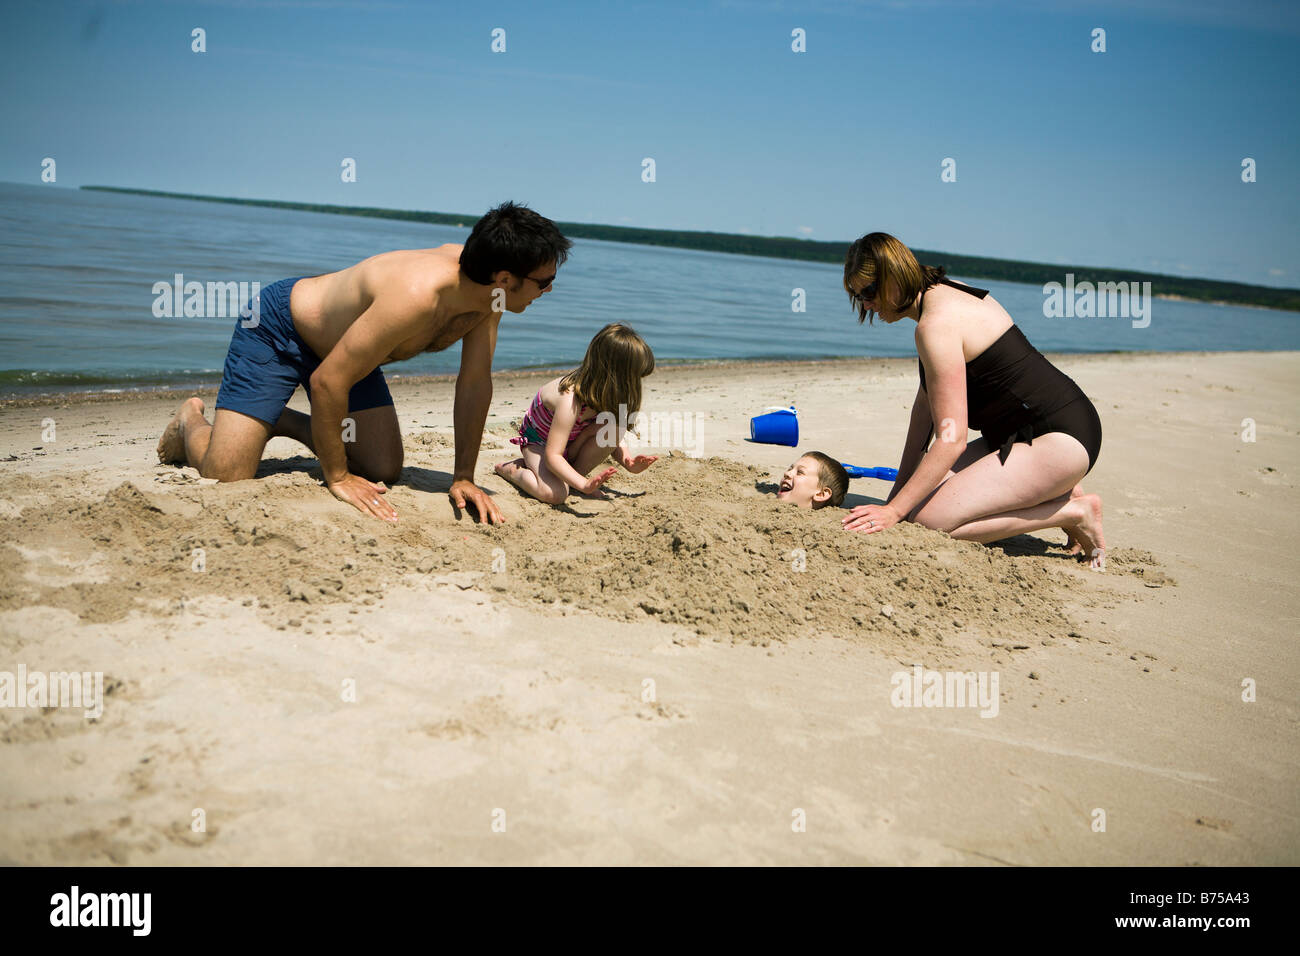 Family in bathing suits burying boy in sand, Grand Beach provincial Park, Manitoba, Canada Stock Photo